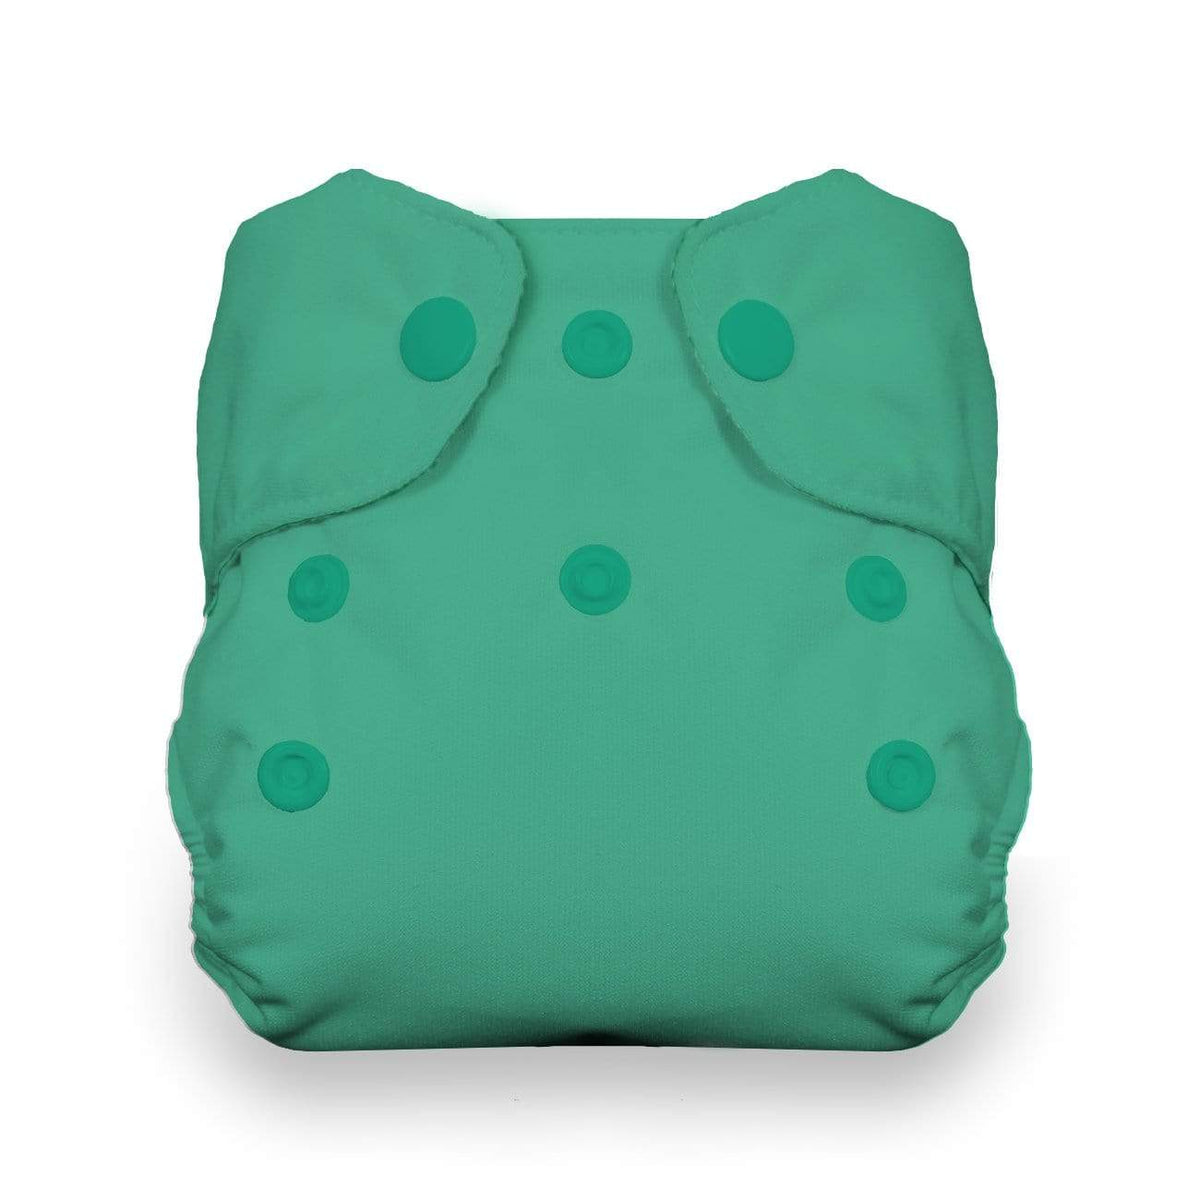 Thirsties Newborn Snap All In One Diaper - Seafoam